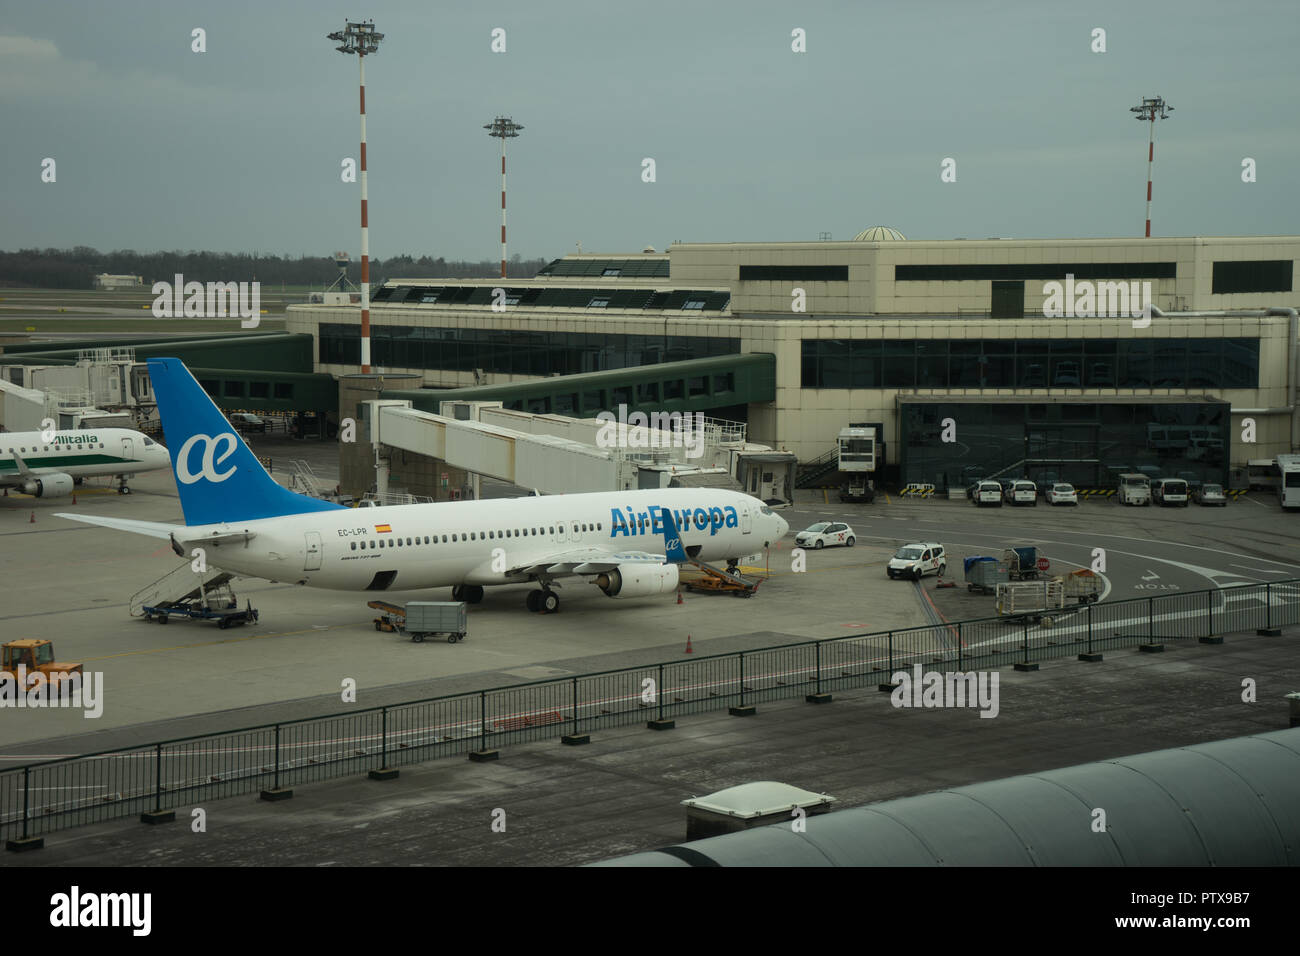 Milan Airport Italy April 2 2018 Air Europa Plane At The Milan Malpensa Airport Stock Photo Alamy